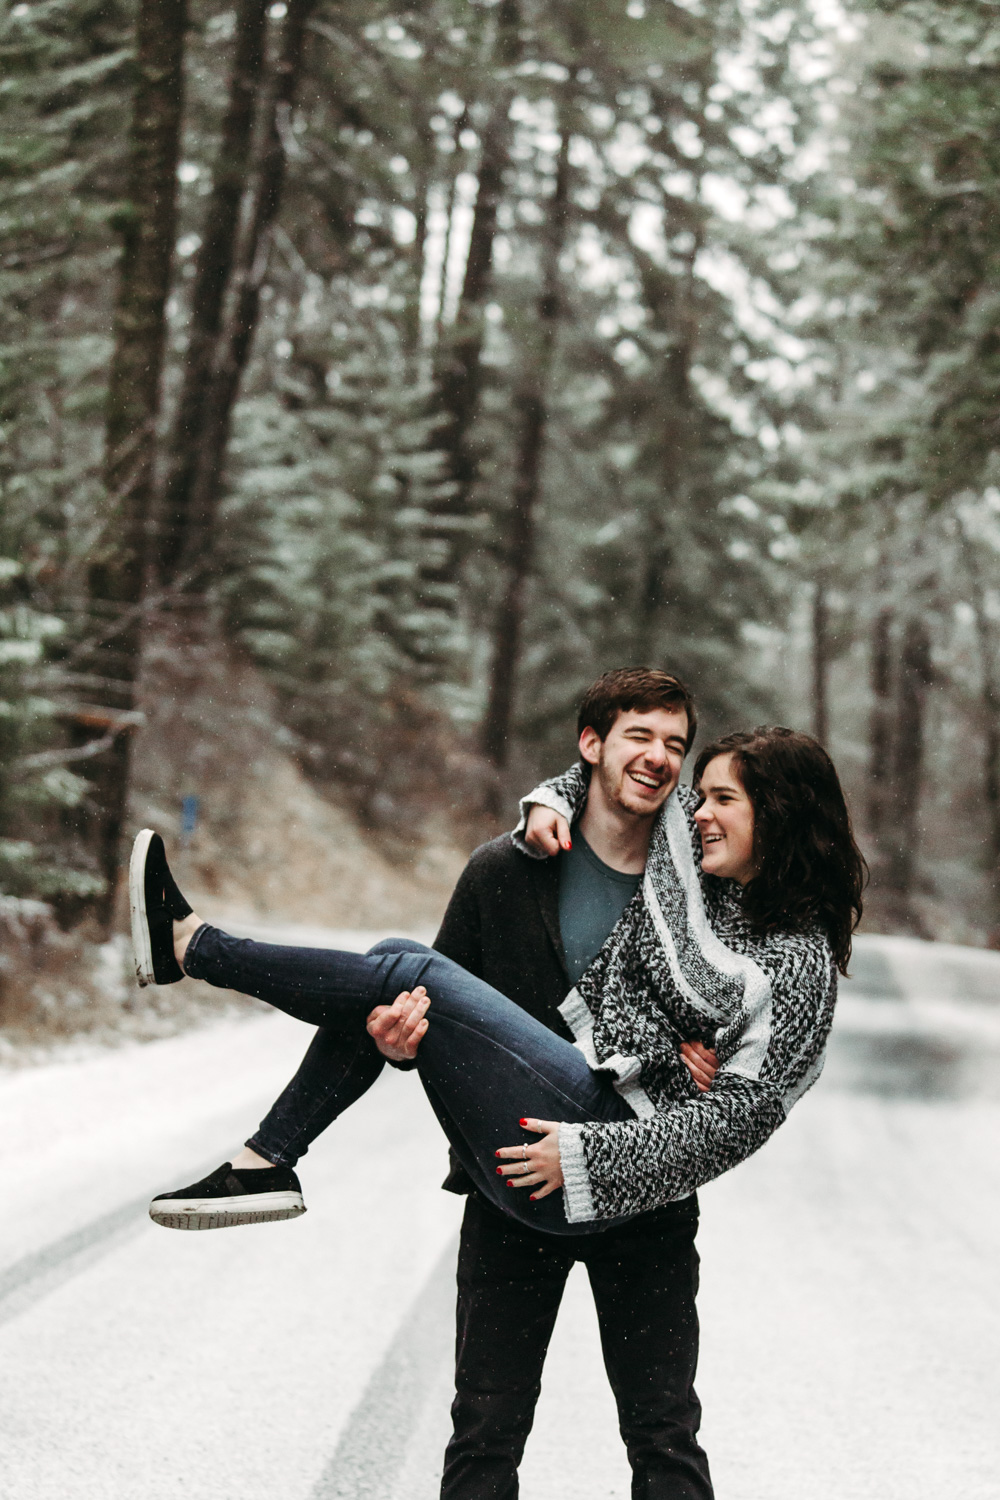 Boise Engagement and Wedding Photographer at Idler's Rest in Moscow Idaho.